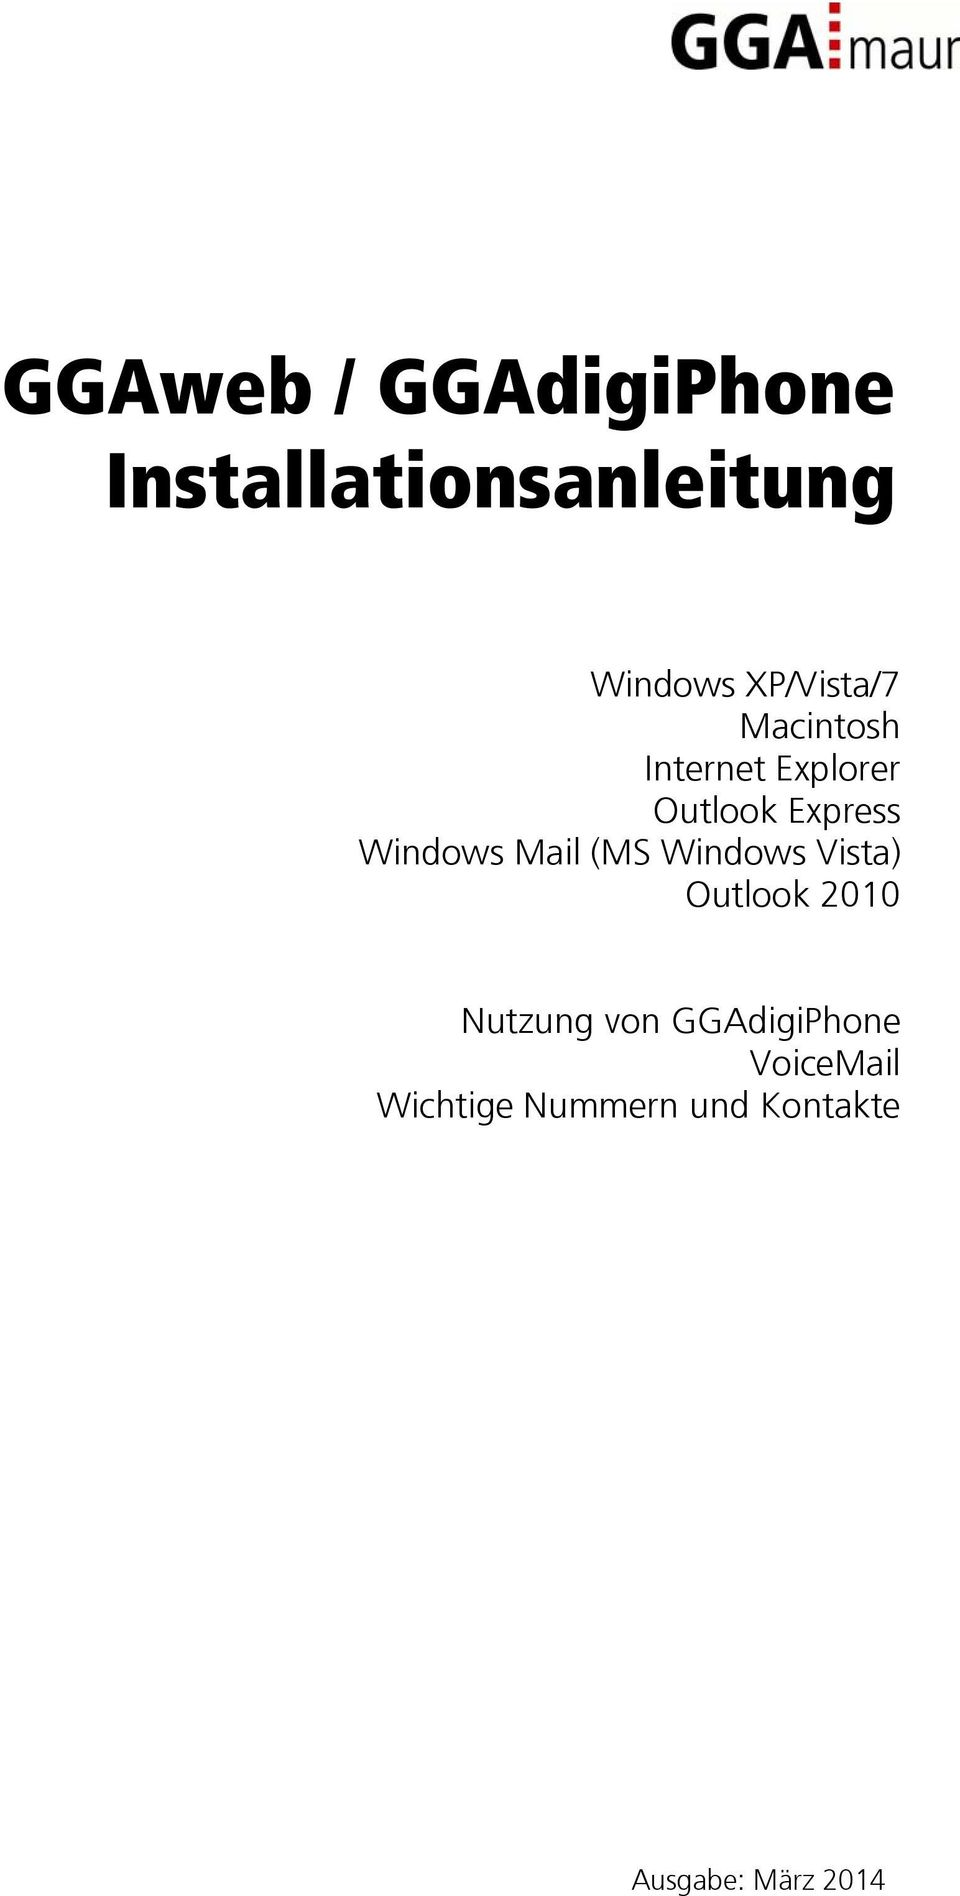 Windows Vista) Outlook 2010 Nutzung von GGAdigiPhone VoiceMail